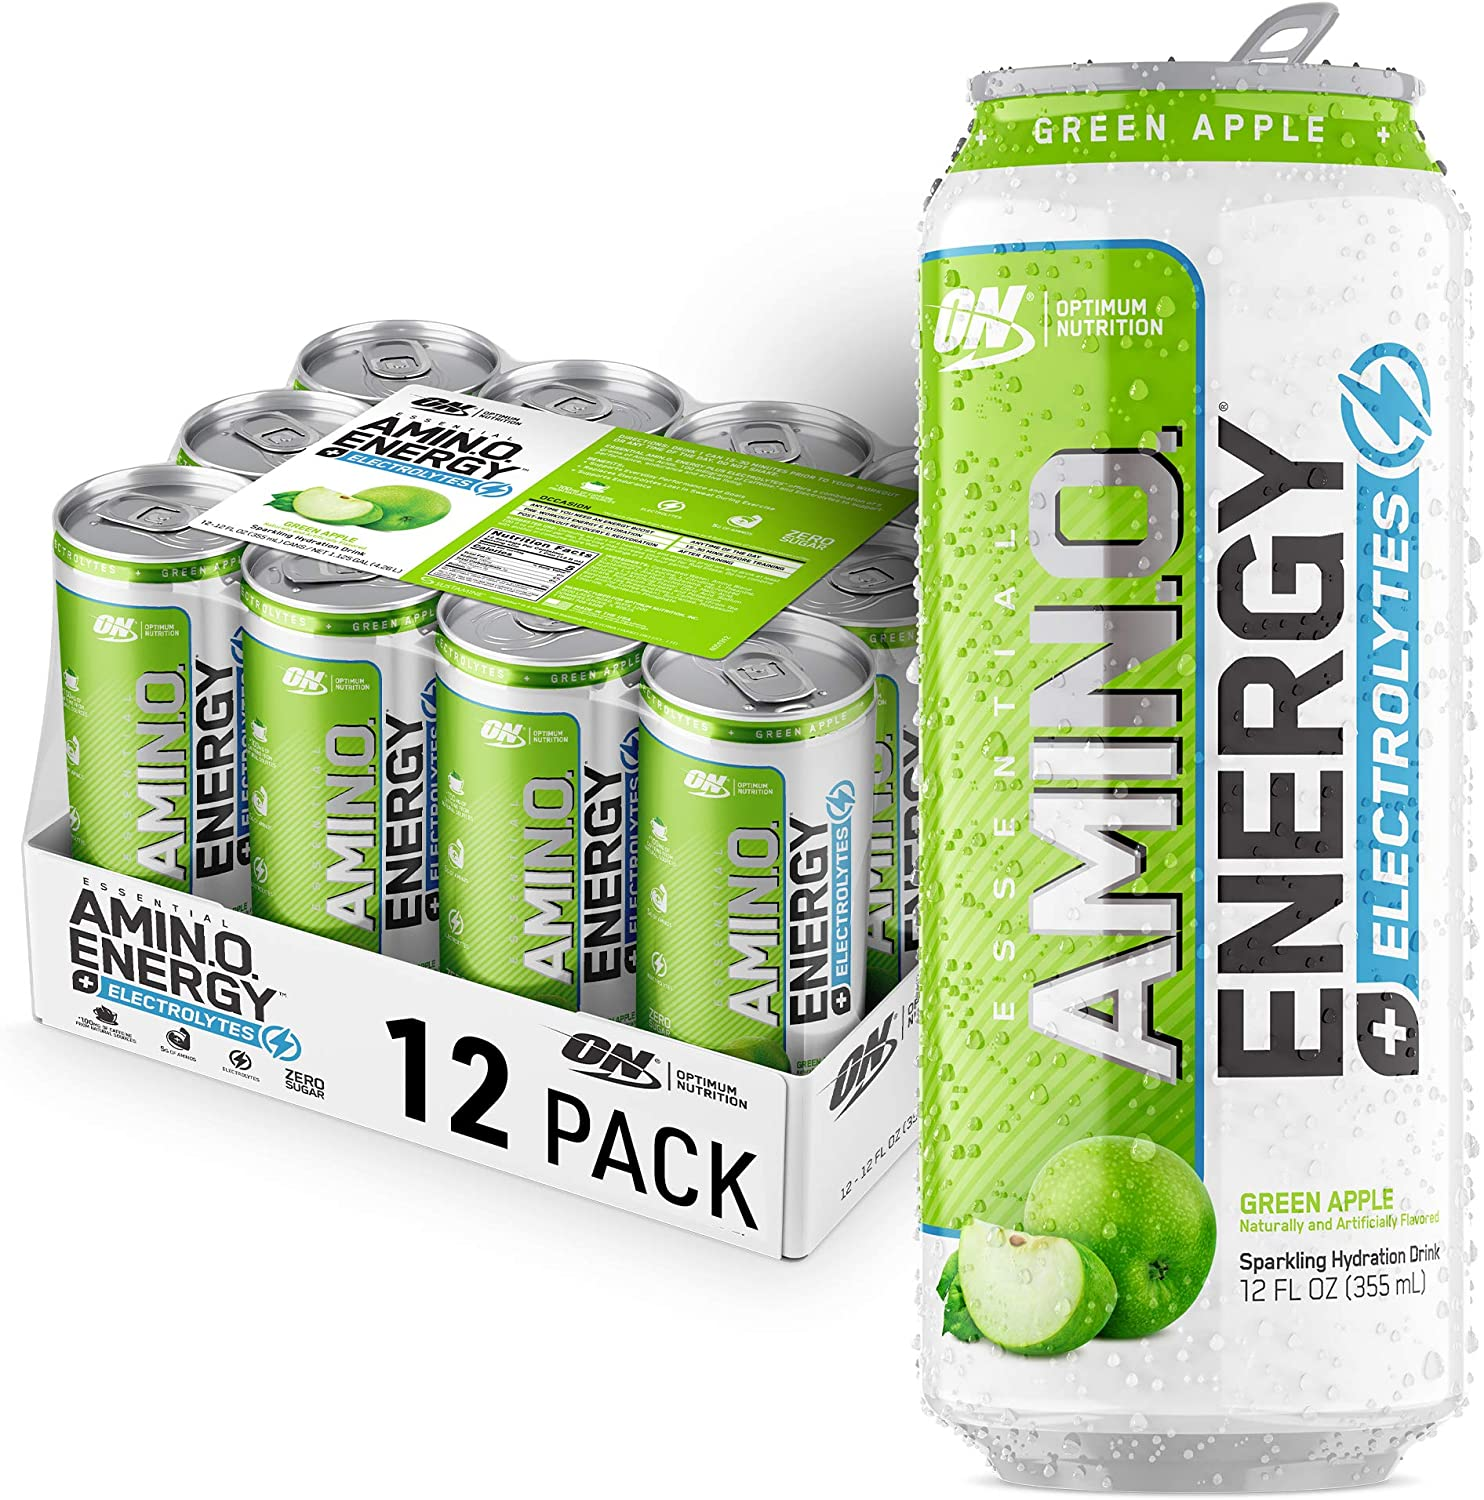 Optimum Nutrition Amino Energy + Electrolytes Sparkling Hydration Drink - Pre Workout, BCAA, Keto Friendly, Energy Powder - Green Apple, 12 Count